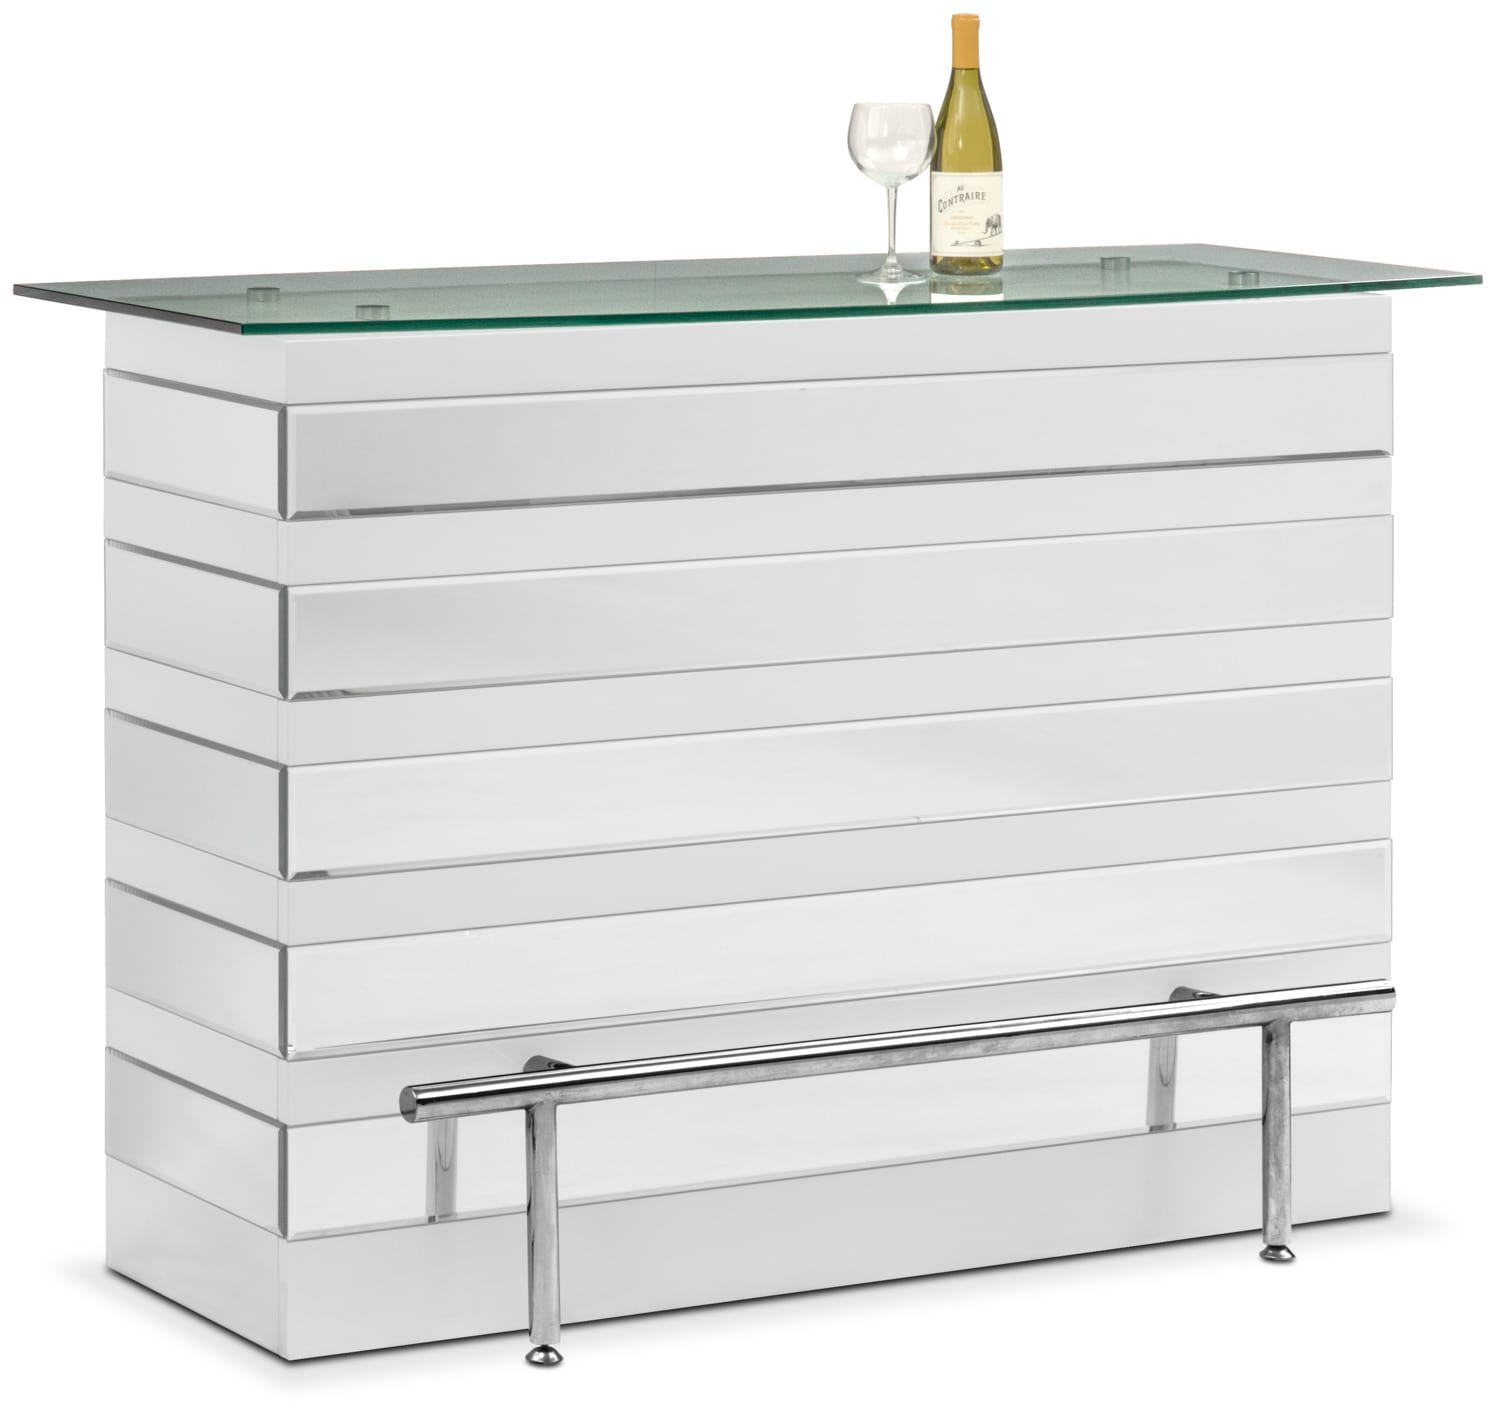 Was $999.99 Today $899.99 Spectra Bar   White And Mirror